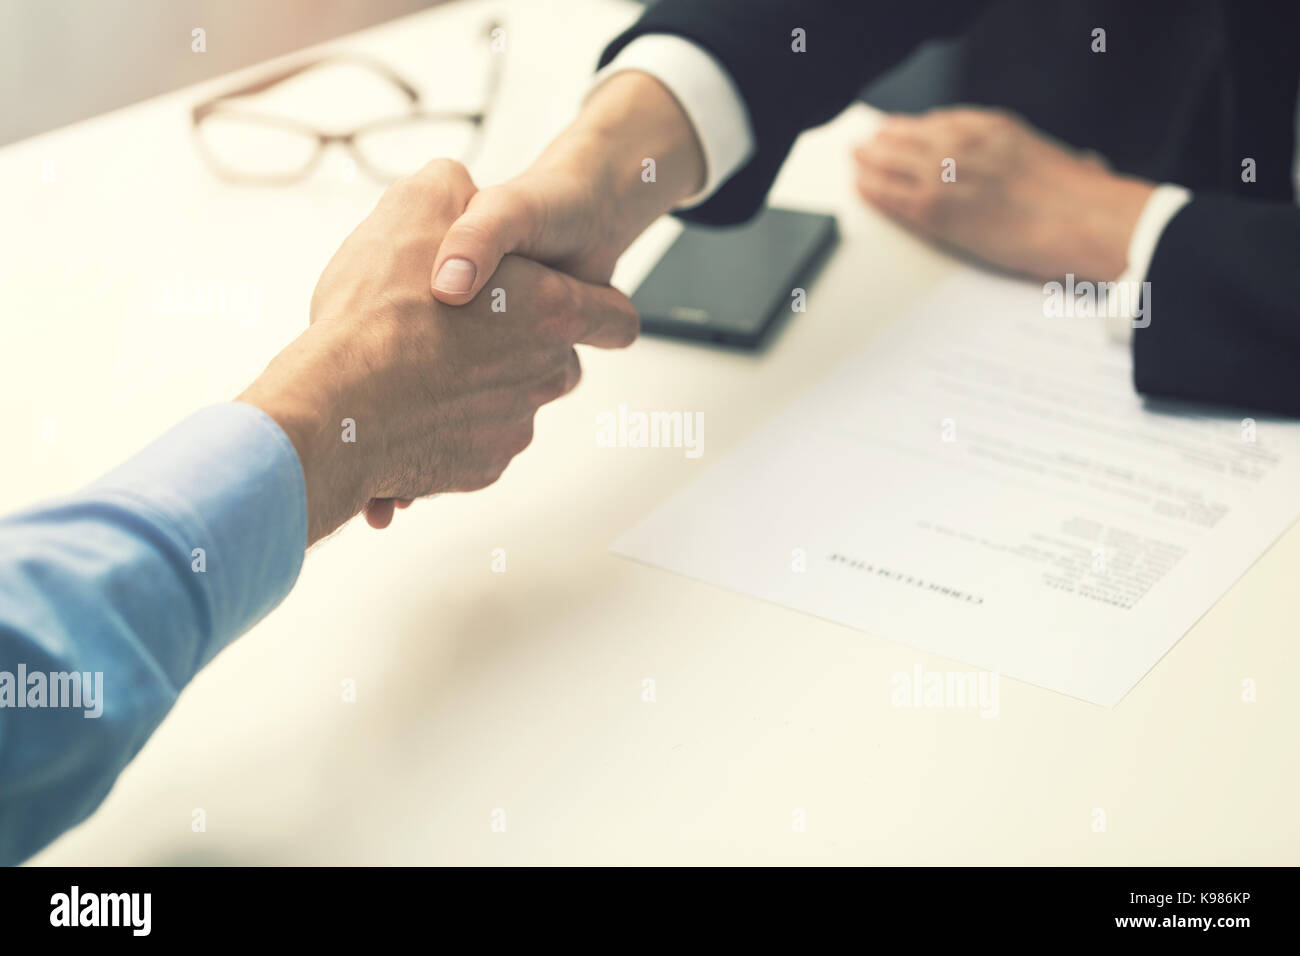 handshake after successful job interview at office - Stock Image